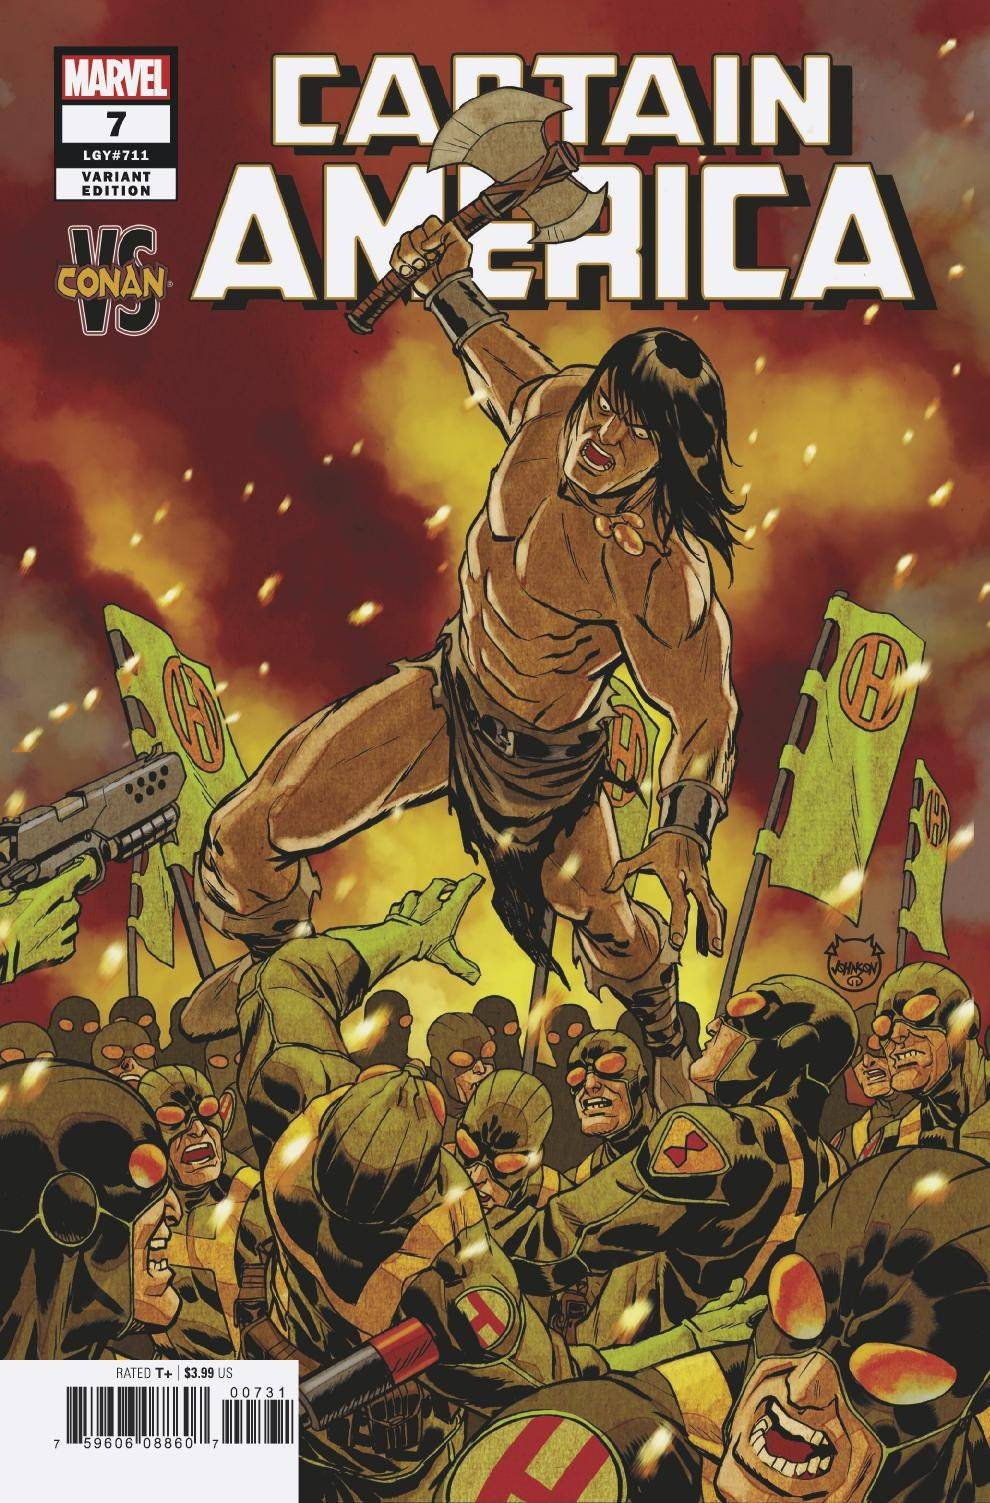 CAPTAIN AMERICA #7 JOHNSON CONAN VAR